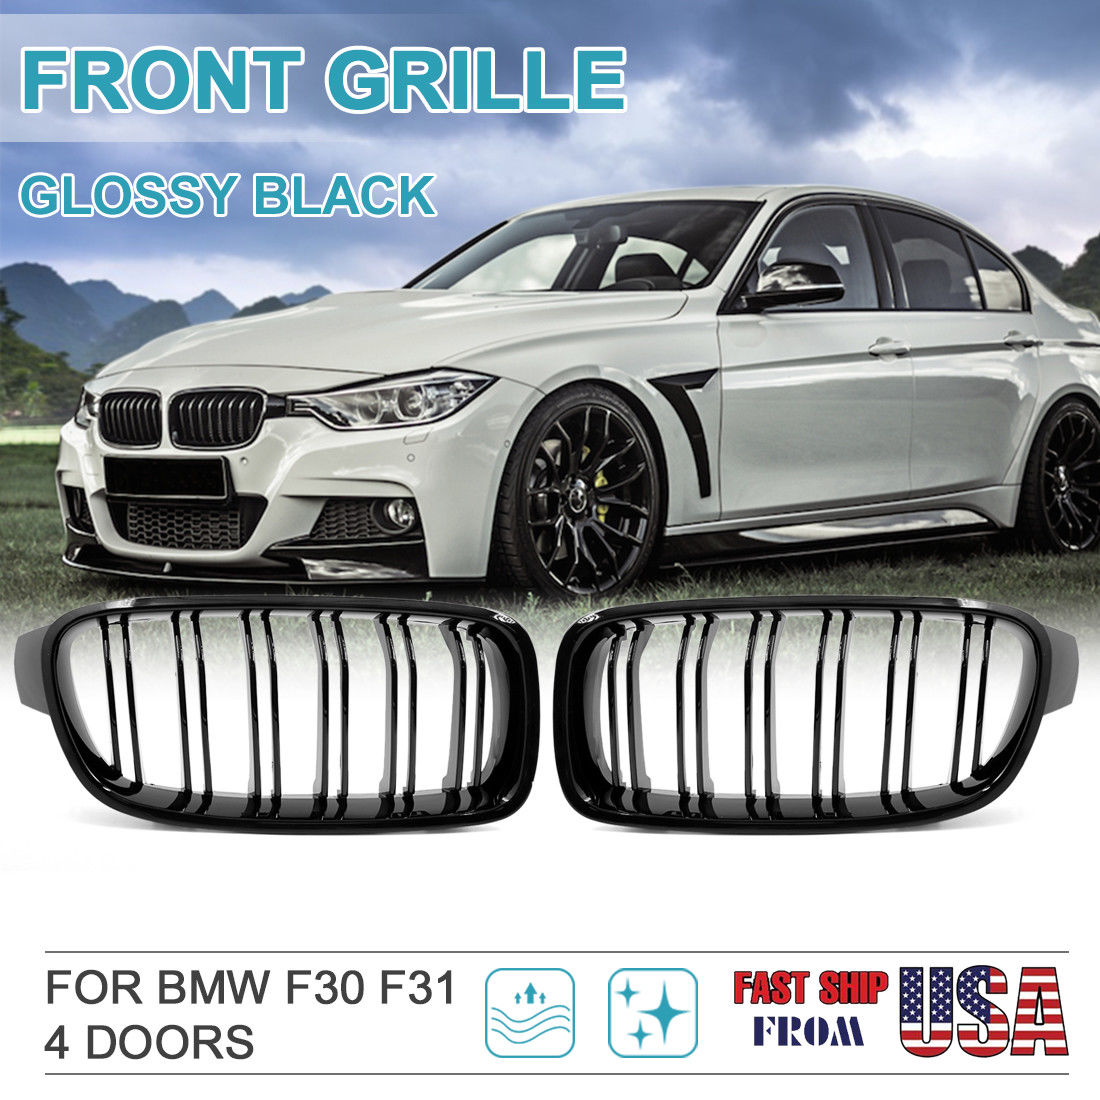 Great Gloss Black Front Kidney Grille For Bmw F30 F31 328i 335i